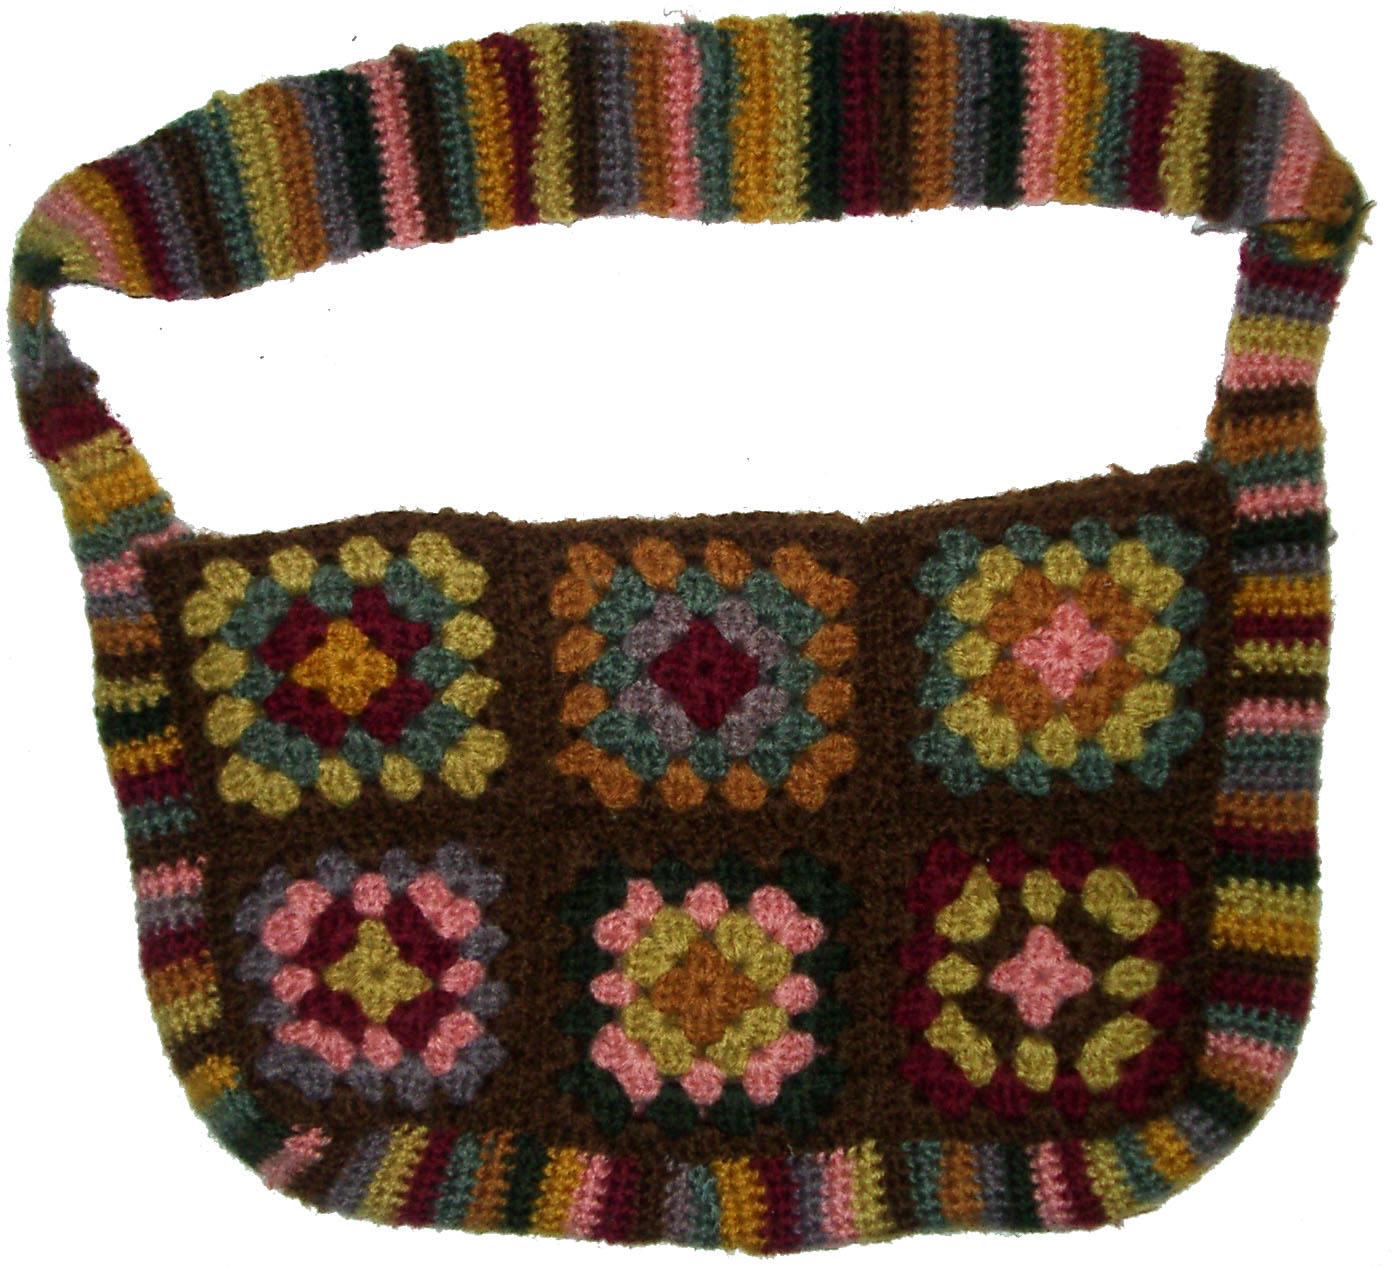 Crochet Bag Granny Square : Just a Stitch Away: Crocheted Granny Square Bag